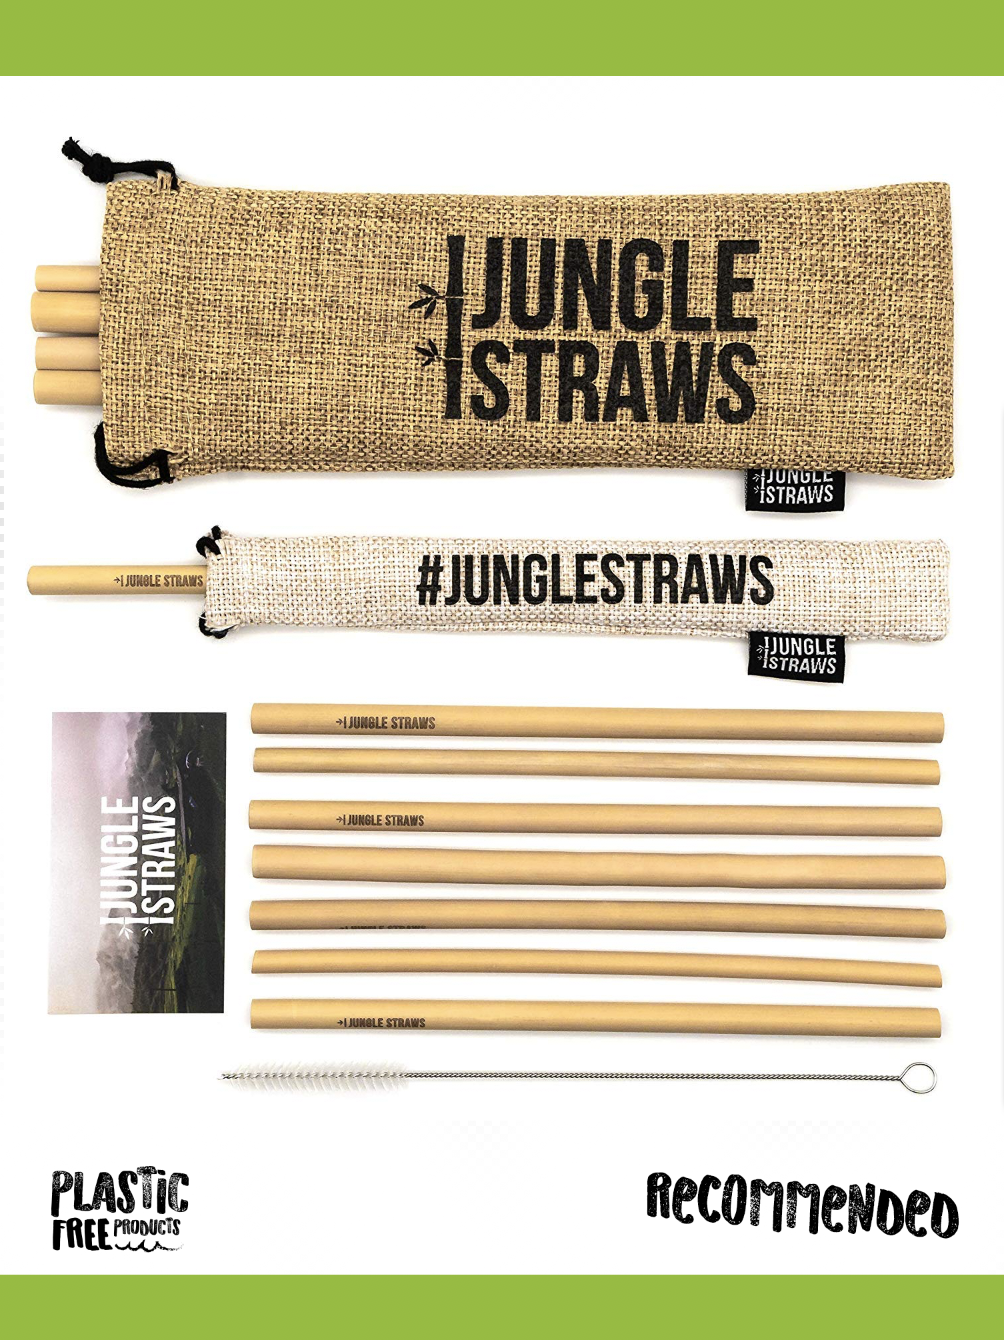 Jungle Straws Reusable Bamboo Drinking Straws - We used to give the kids straws all the time, these have replaced them in our household. They are 100% Natural & Eco Friendly, Biodegradable & Organic. Handy too when you buy off Amazon they Include a Cleaning Brush, Single Straw Case & Storage Bag. Reuseable? Yes.. Dishwasher Safe and of course Plastic Free! We recommend buying off Amazon with their reliable service and for finding the best price.